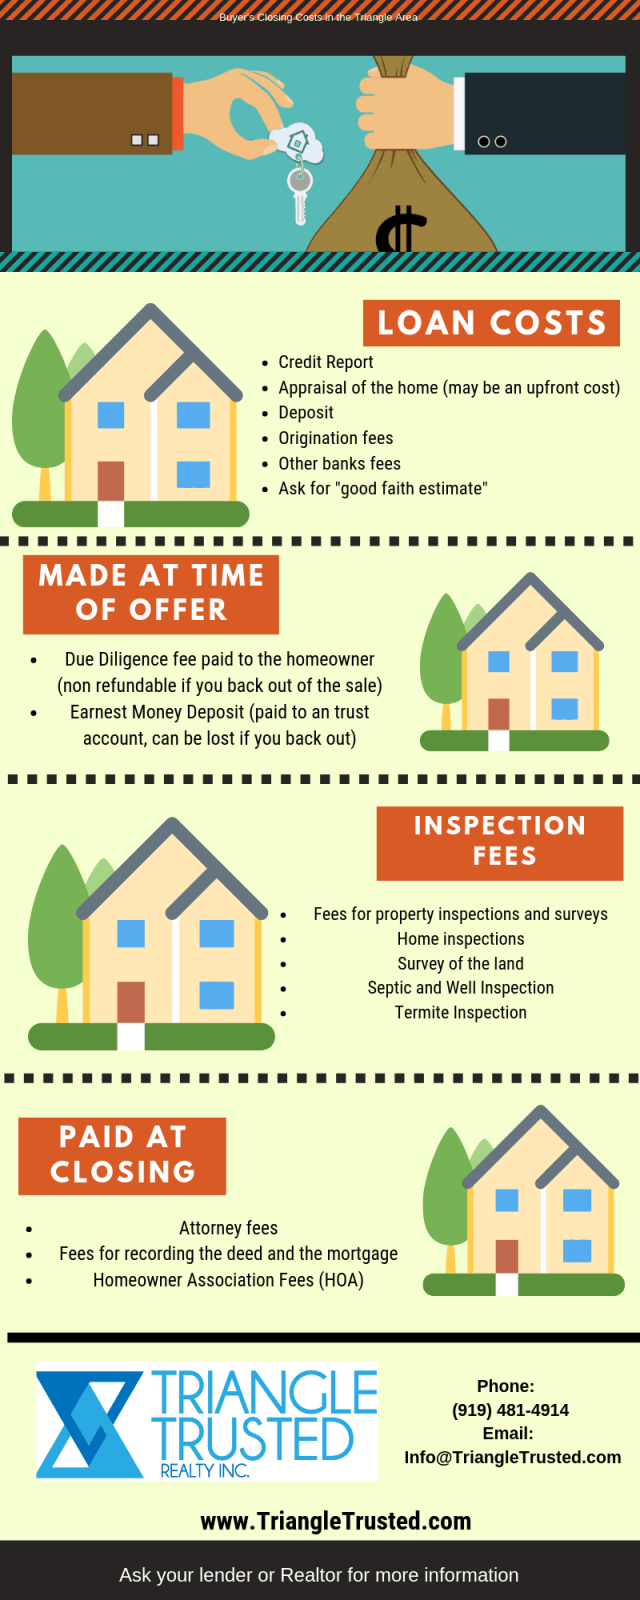 Closing costs when buying a house in Clayton, Raleigh, Apex, Cary, Fuquay, Garner, Willow Spring, NC